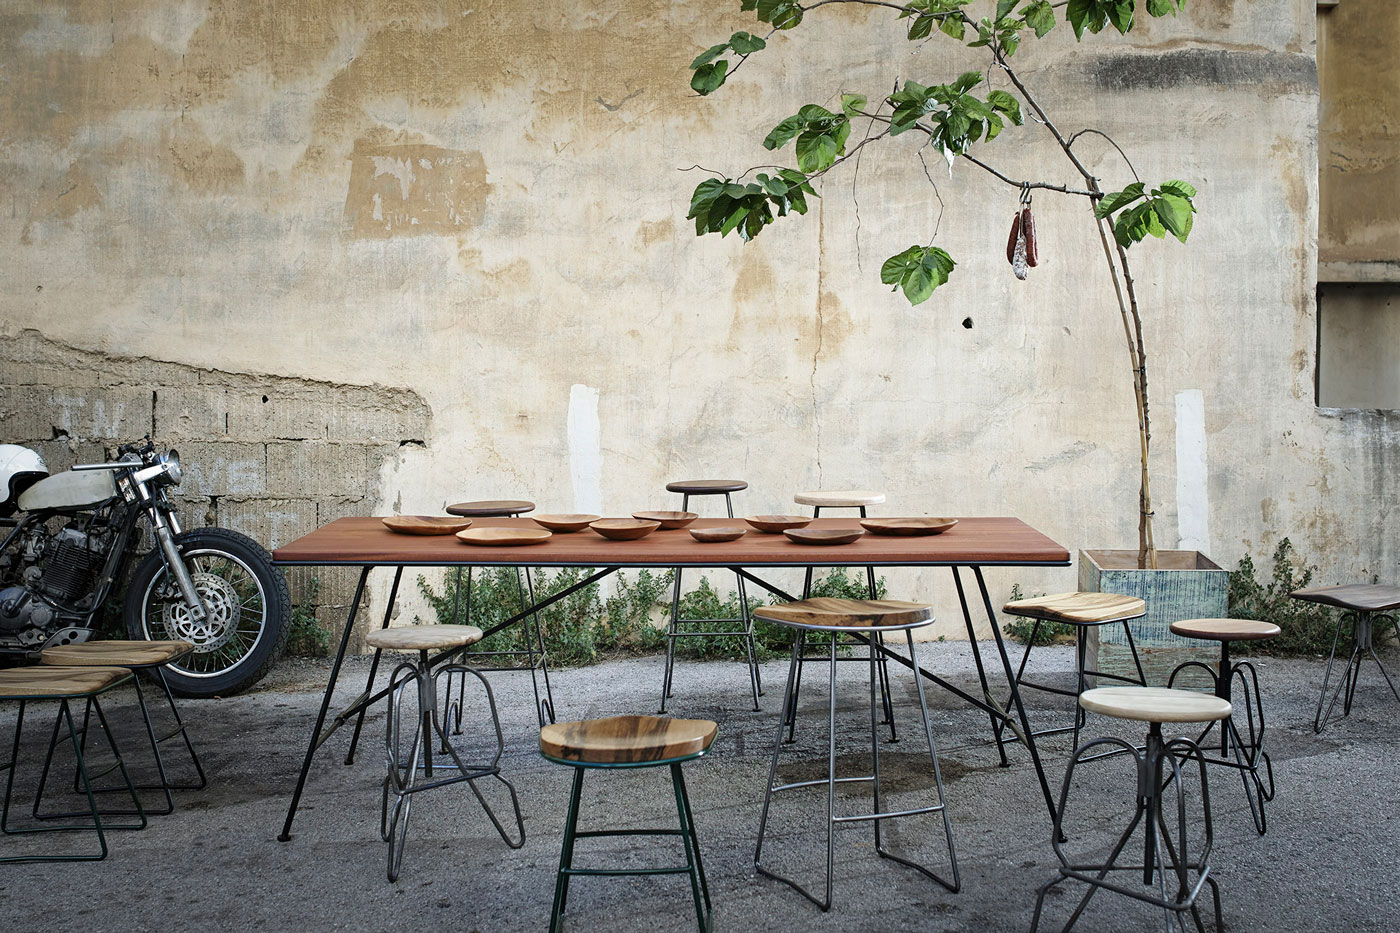 metal-and-wood-table-dining-chairs-seating-stool-wooden-lookbook-1.jpg